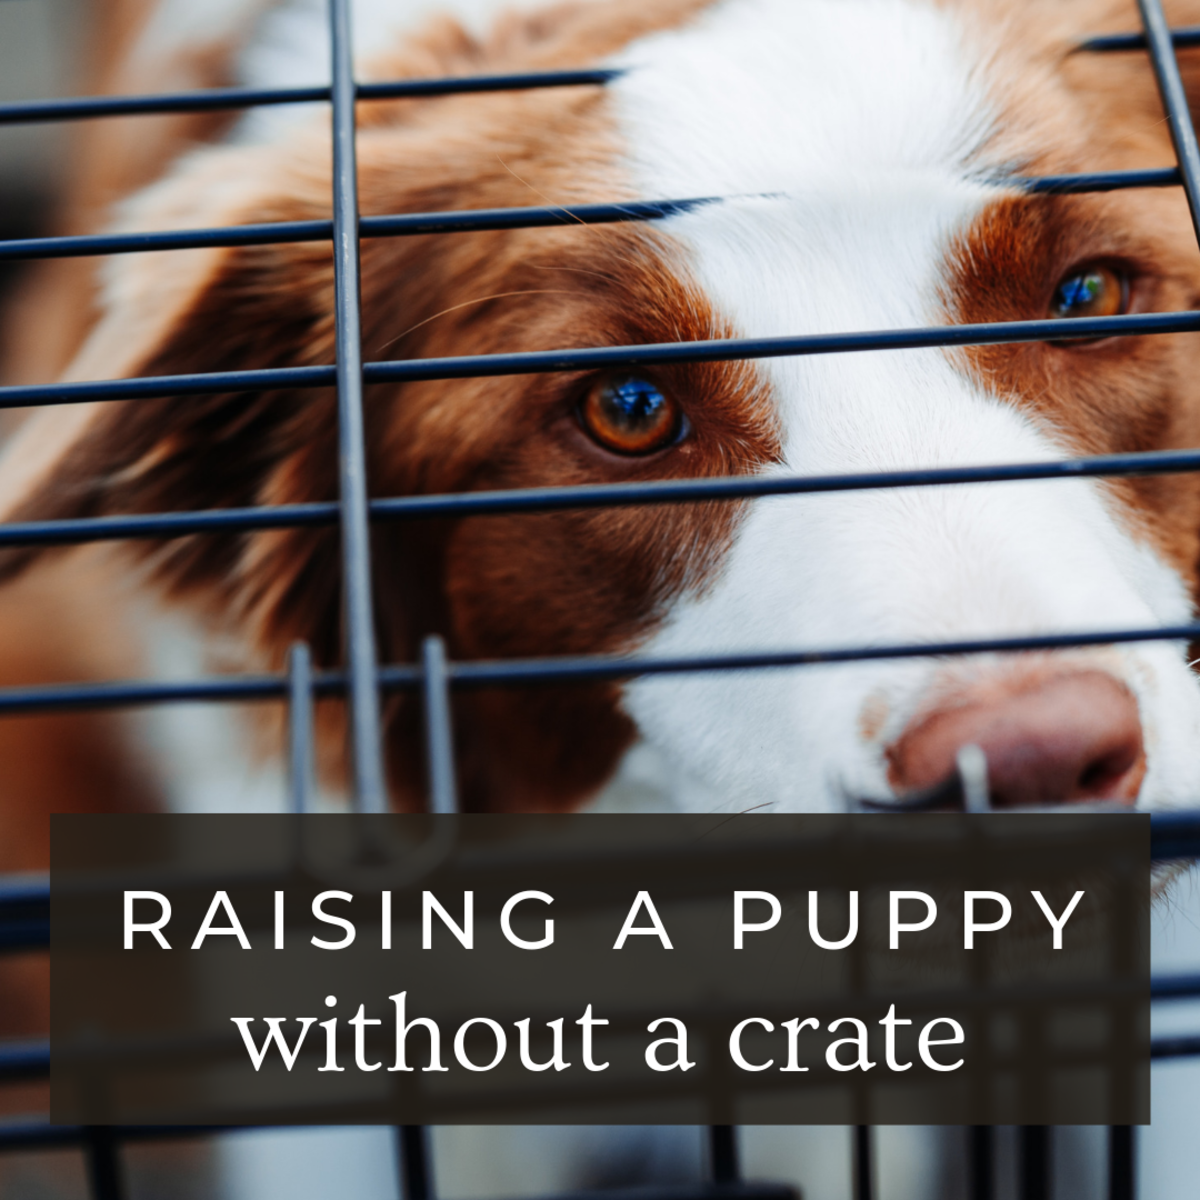 Can You Raise a Puppy Without a Crate?